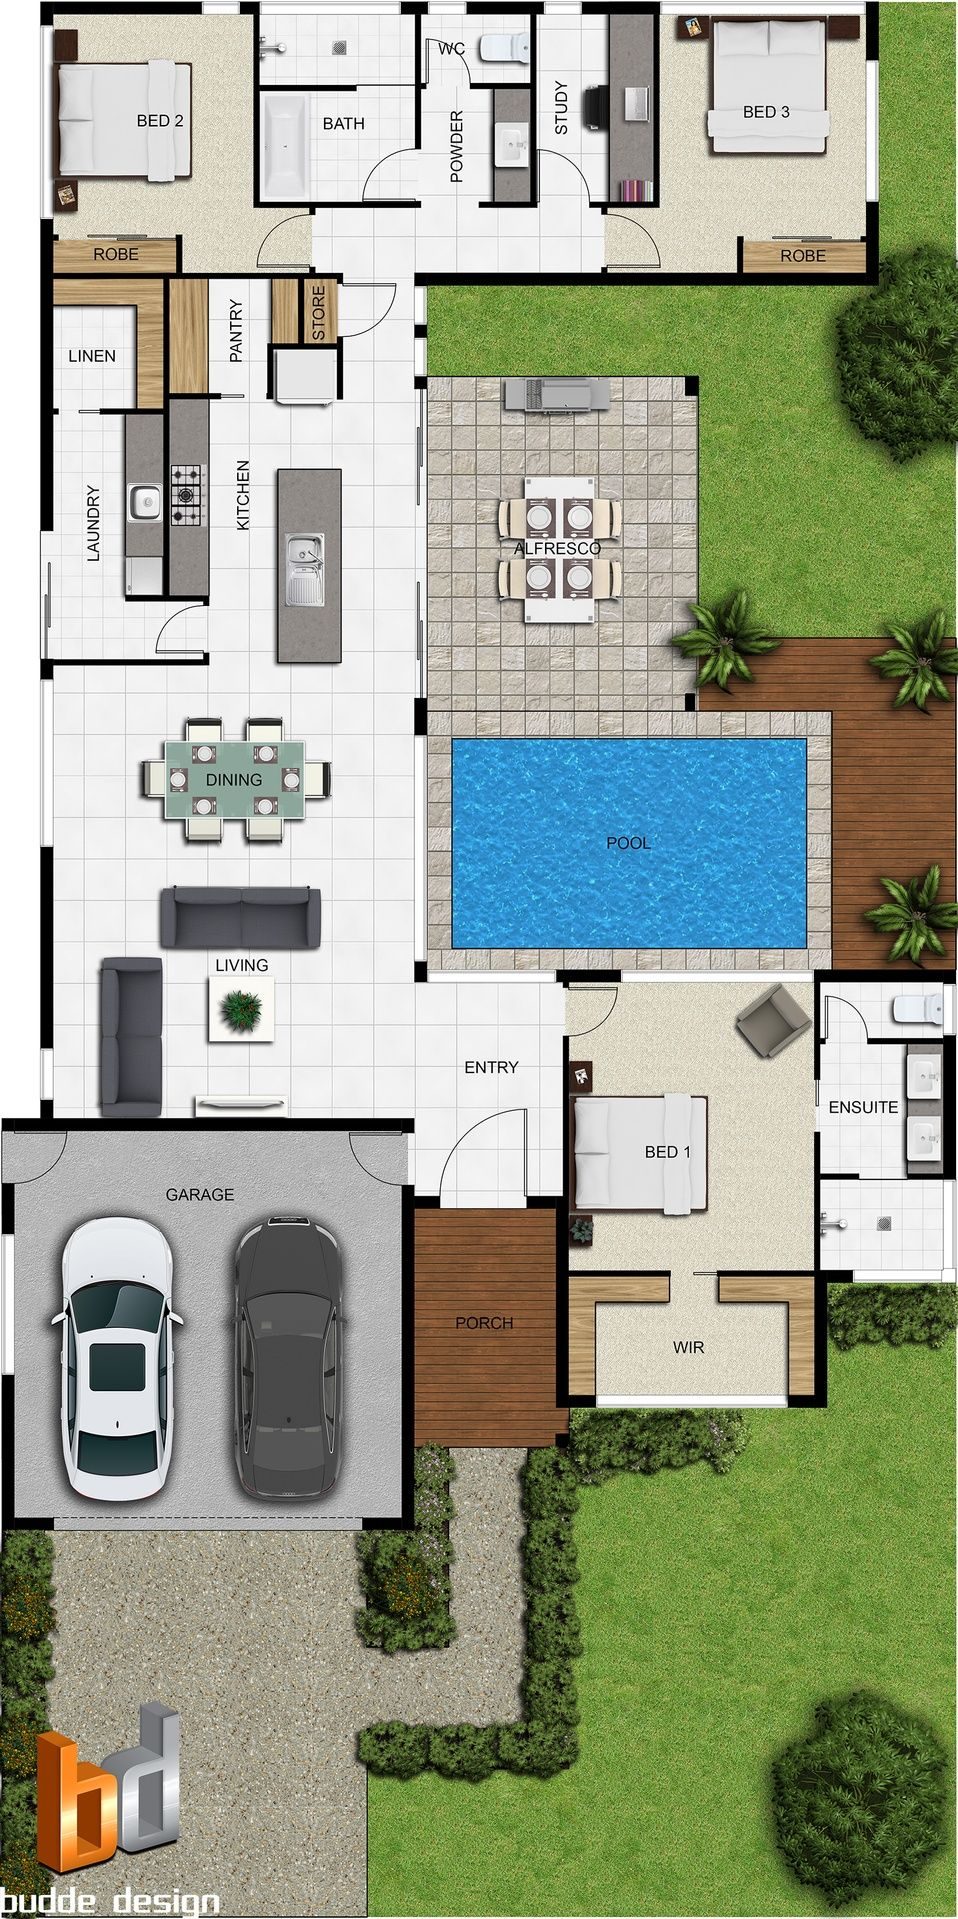 Create High Quality Professional And Realistic 2d Colour Floor Plans From Our Specifical Planos De Casas Minimalistas Planos De Casas Planos De Casas Modernas